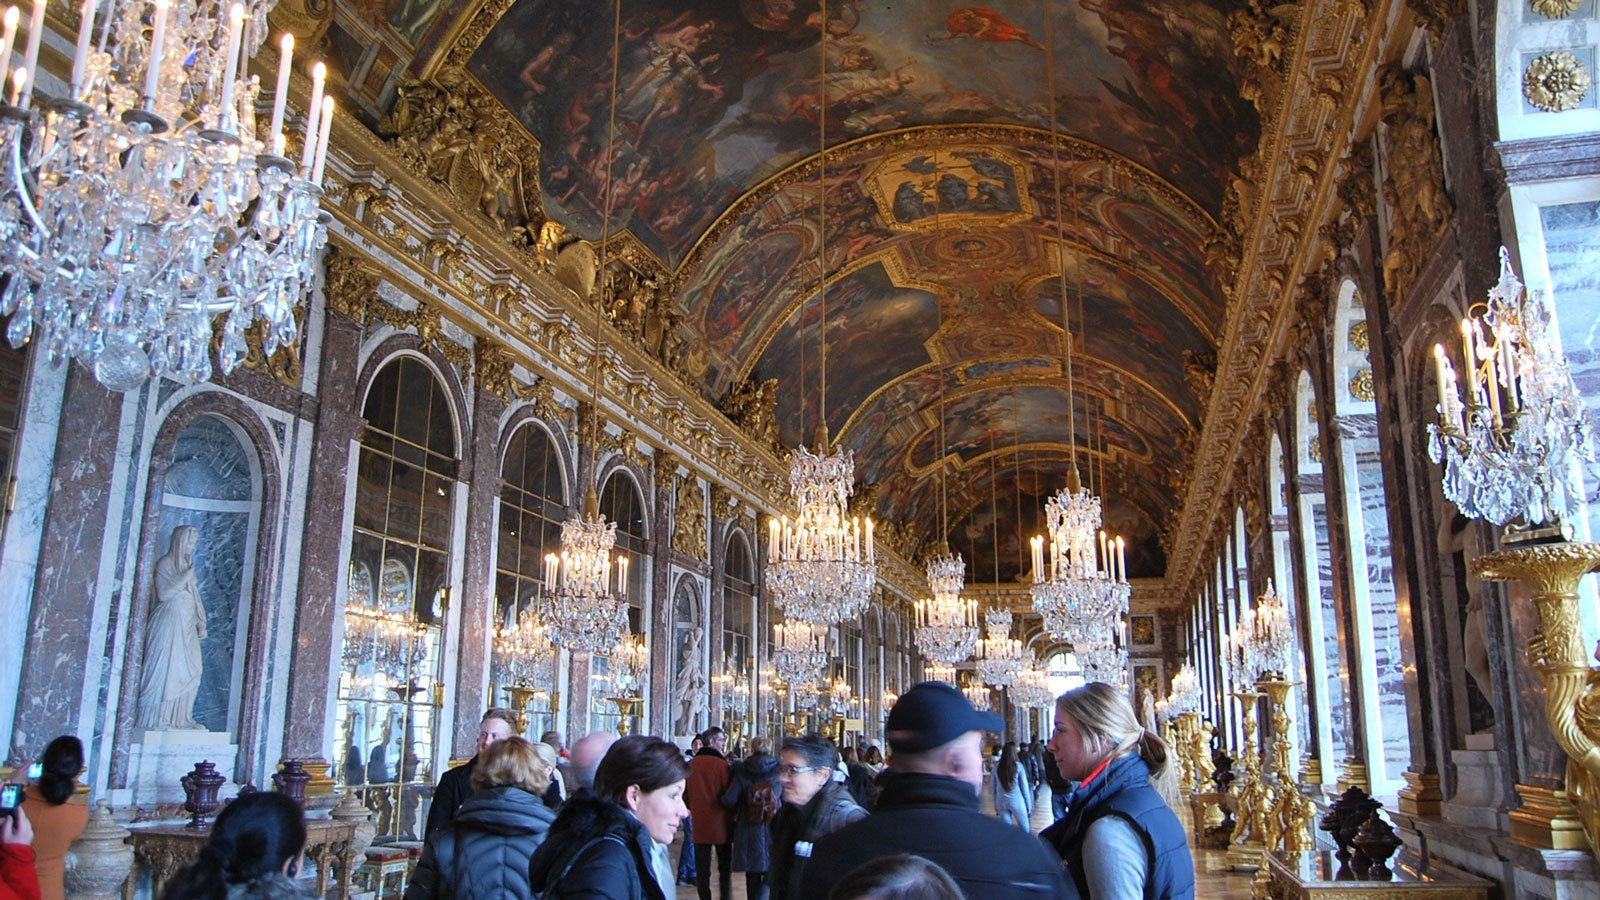 crowded hallways inside the Versailles Palace in France